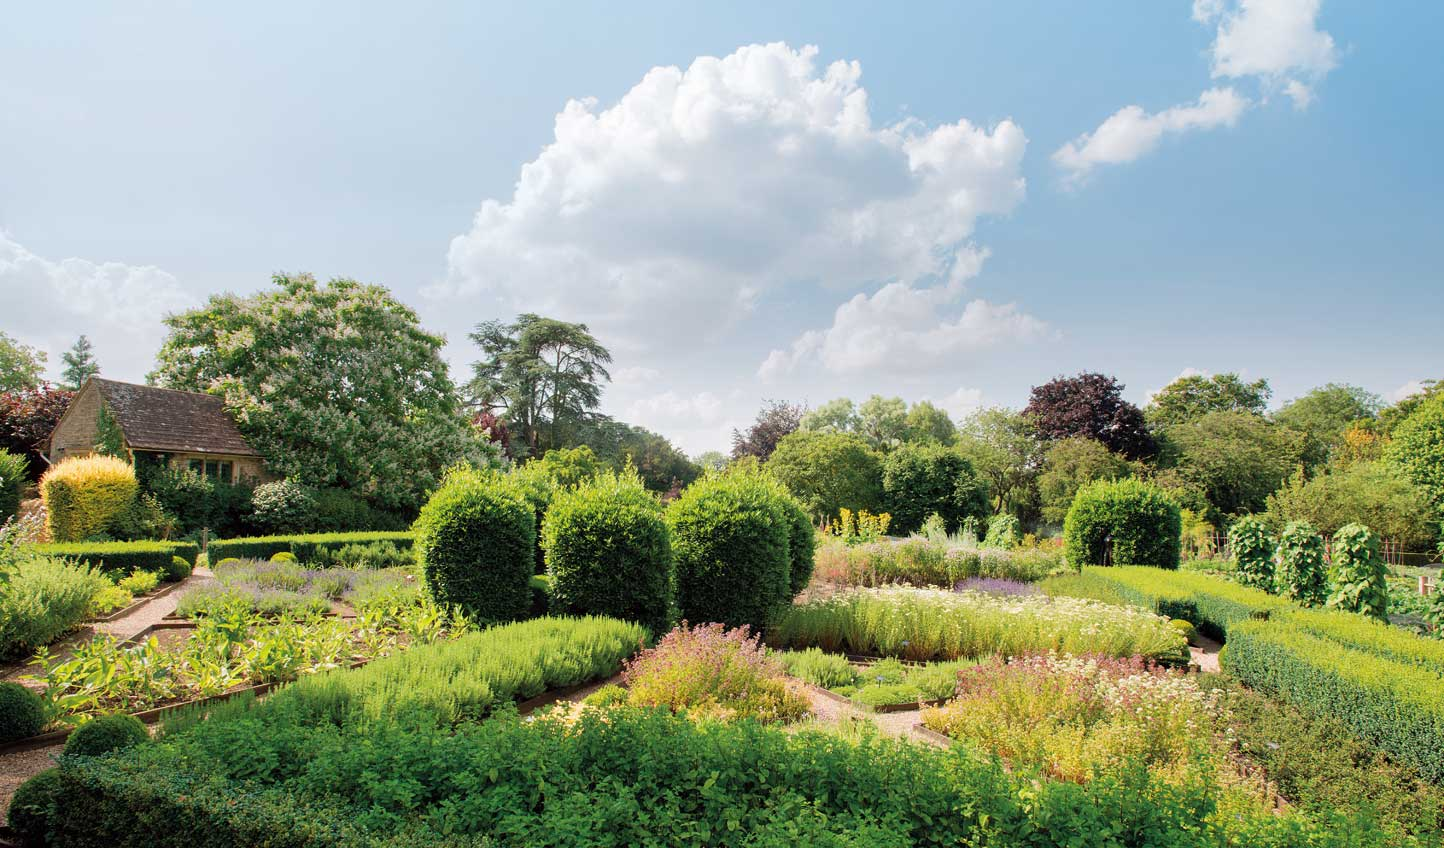 Stroll through the beautiful gardens of Le Manoir, making sure to stop off at the Kitchen Garden